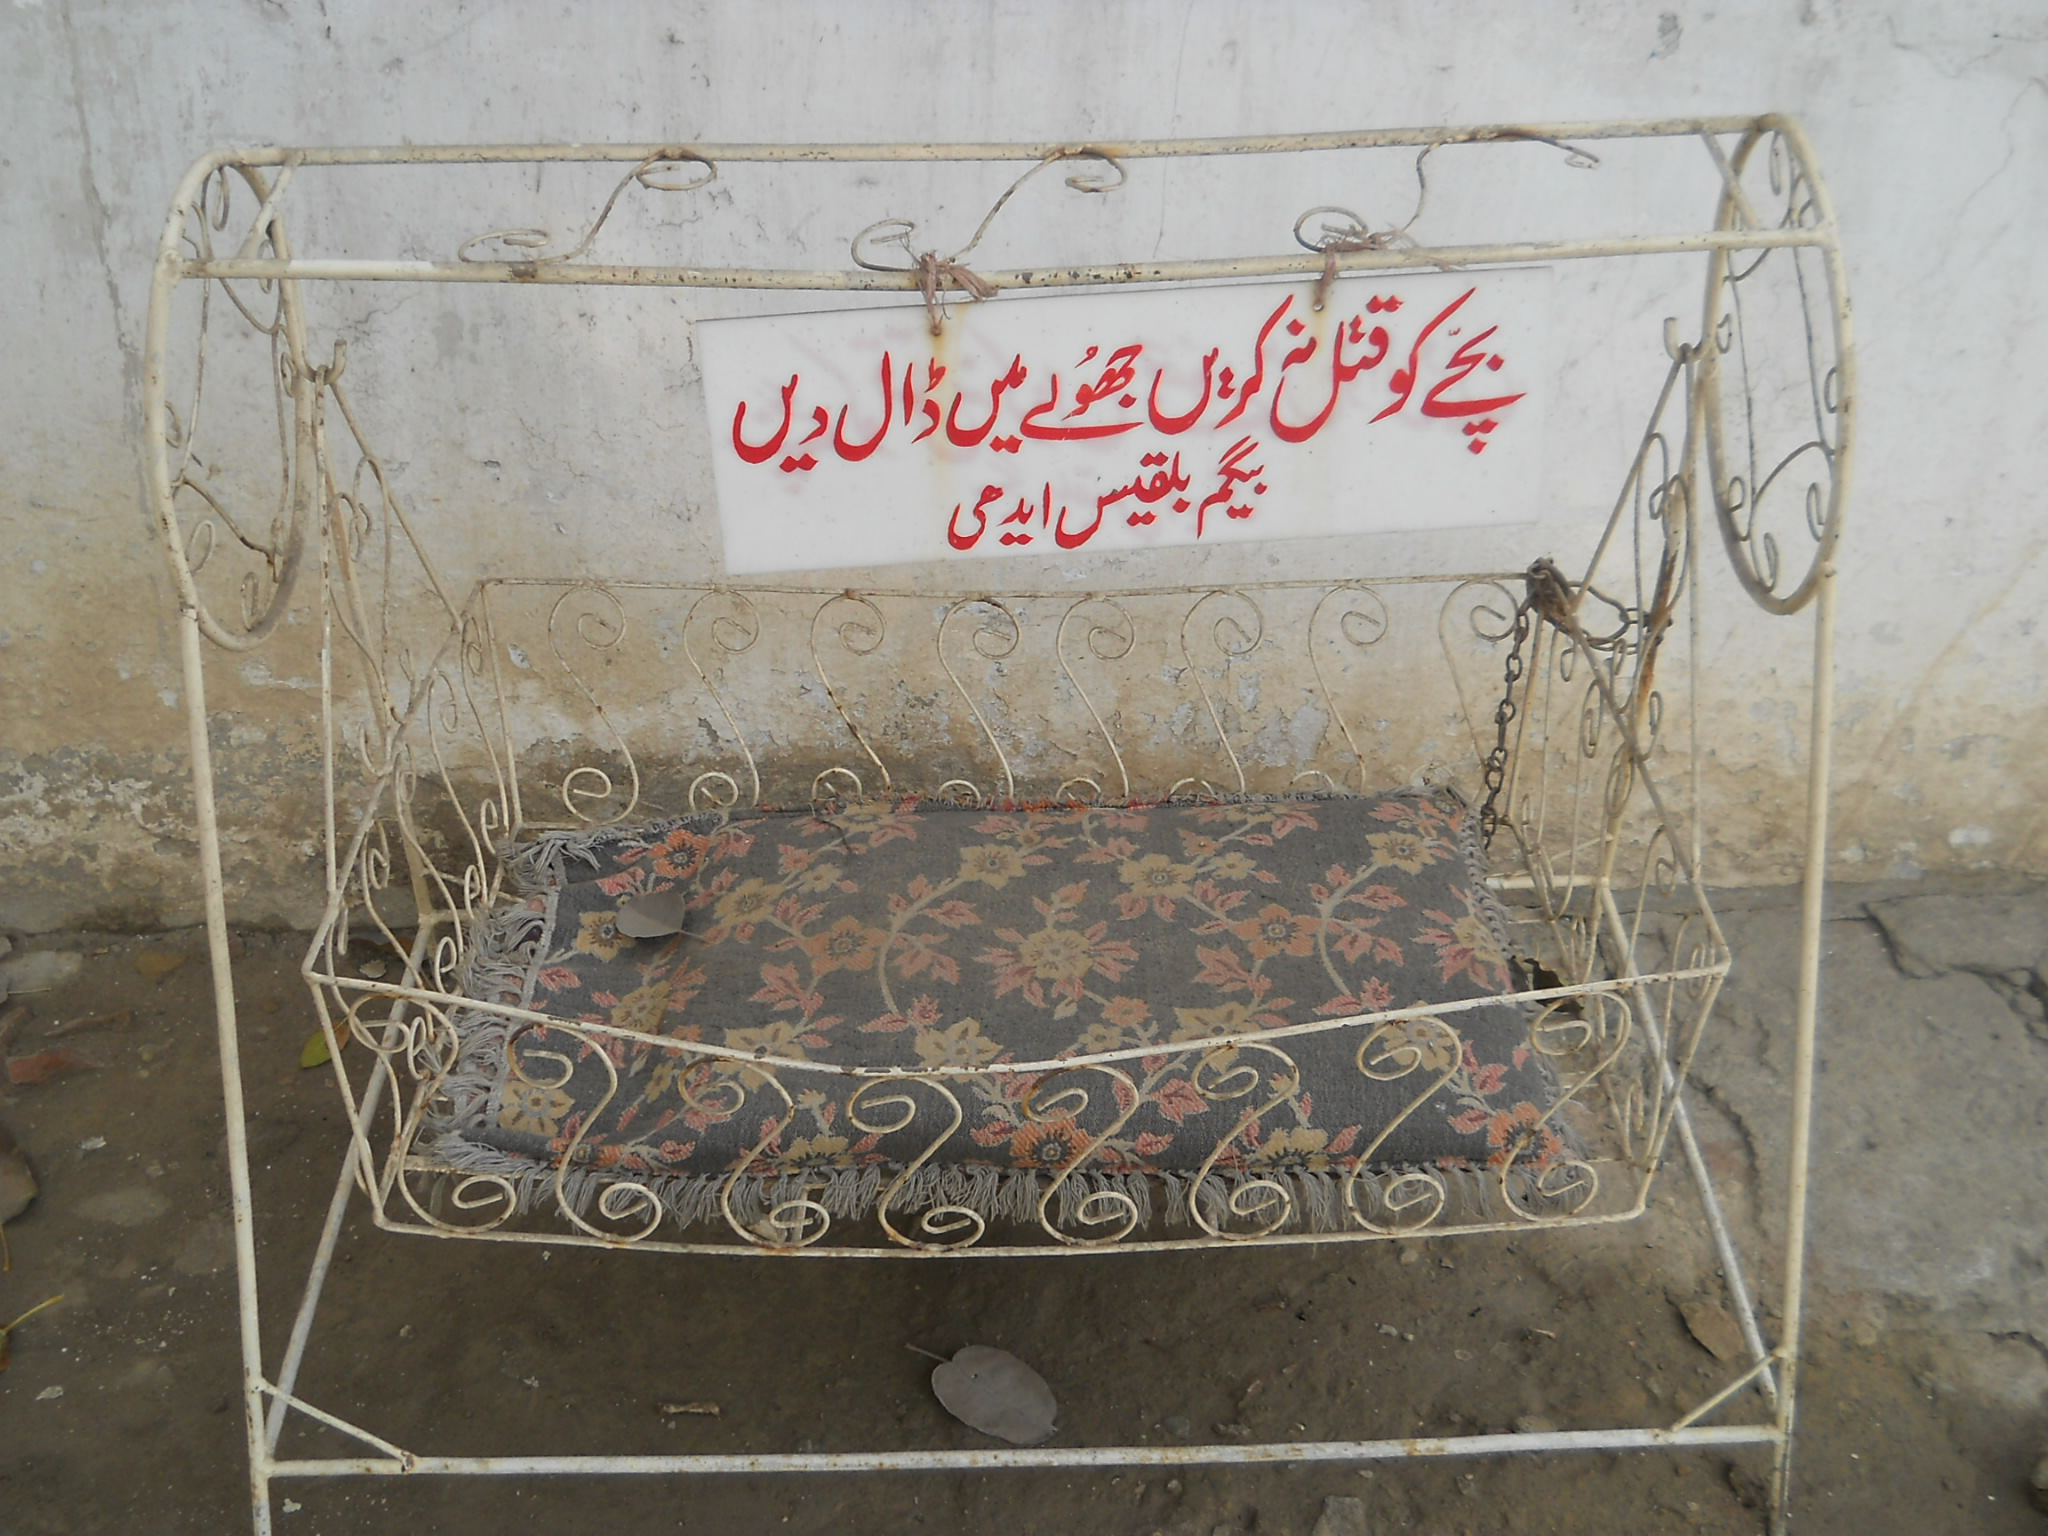 A Pakistan charity has put up cradles with an appeal to place infants in them rather than murder them